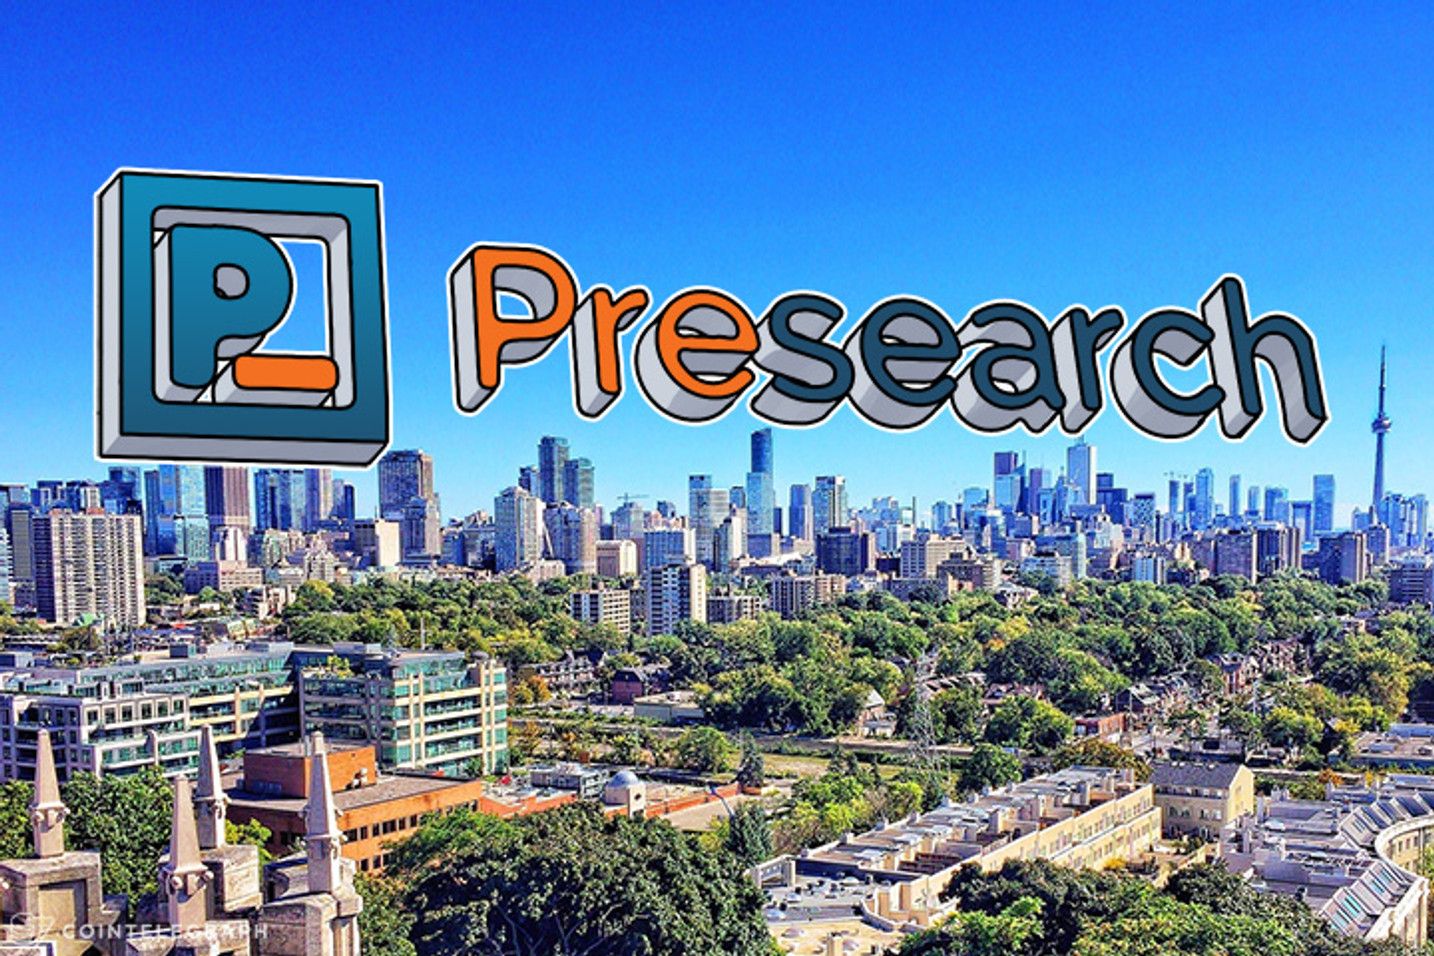 Presearch Announces Beta Launch of Decentralized Search Engine and $12 Million in Token Sales